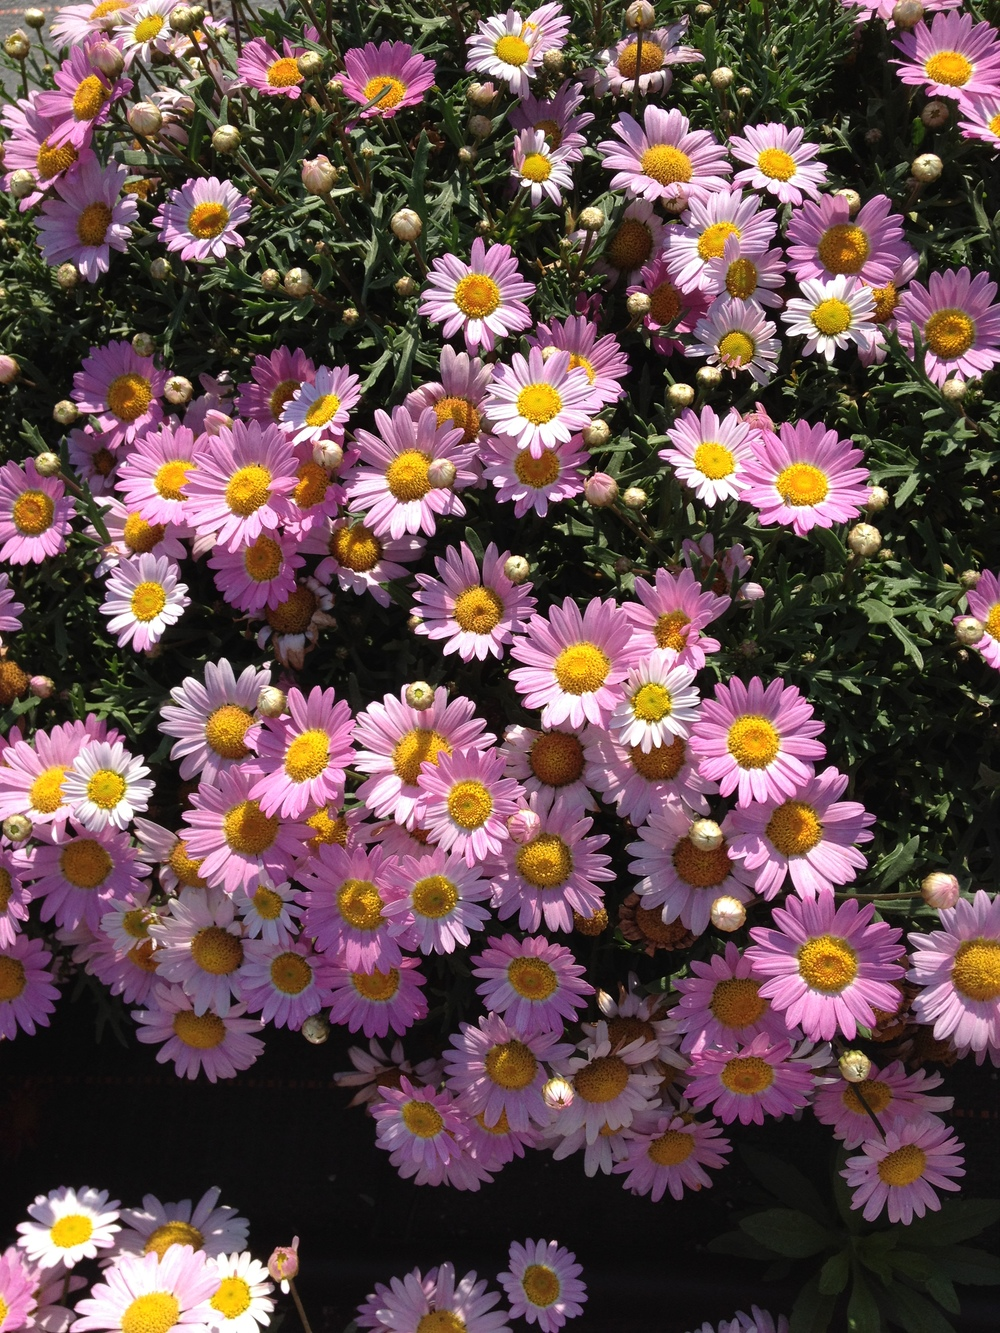 "Argyranthemum is a hardy spring annual that provides an abundance of flowers and color. It will outlast most spring annuals throughout the spring and can continue blooming through September. We feature this item exclusively in 4.5"" pots."